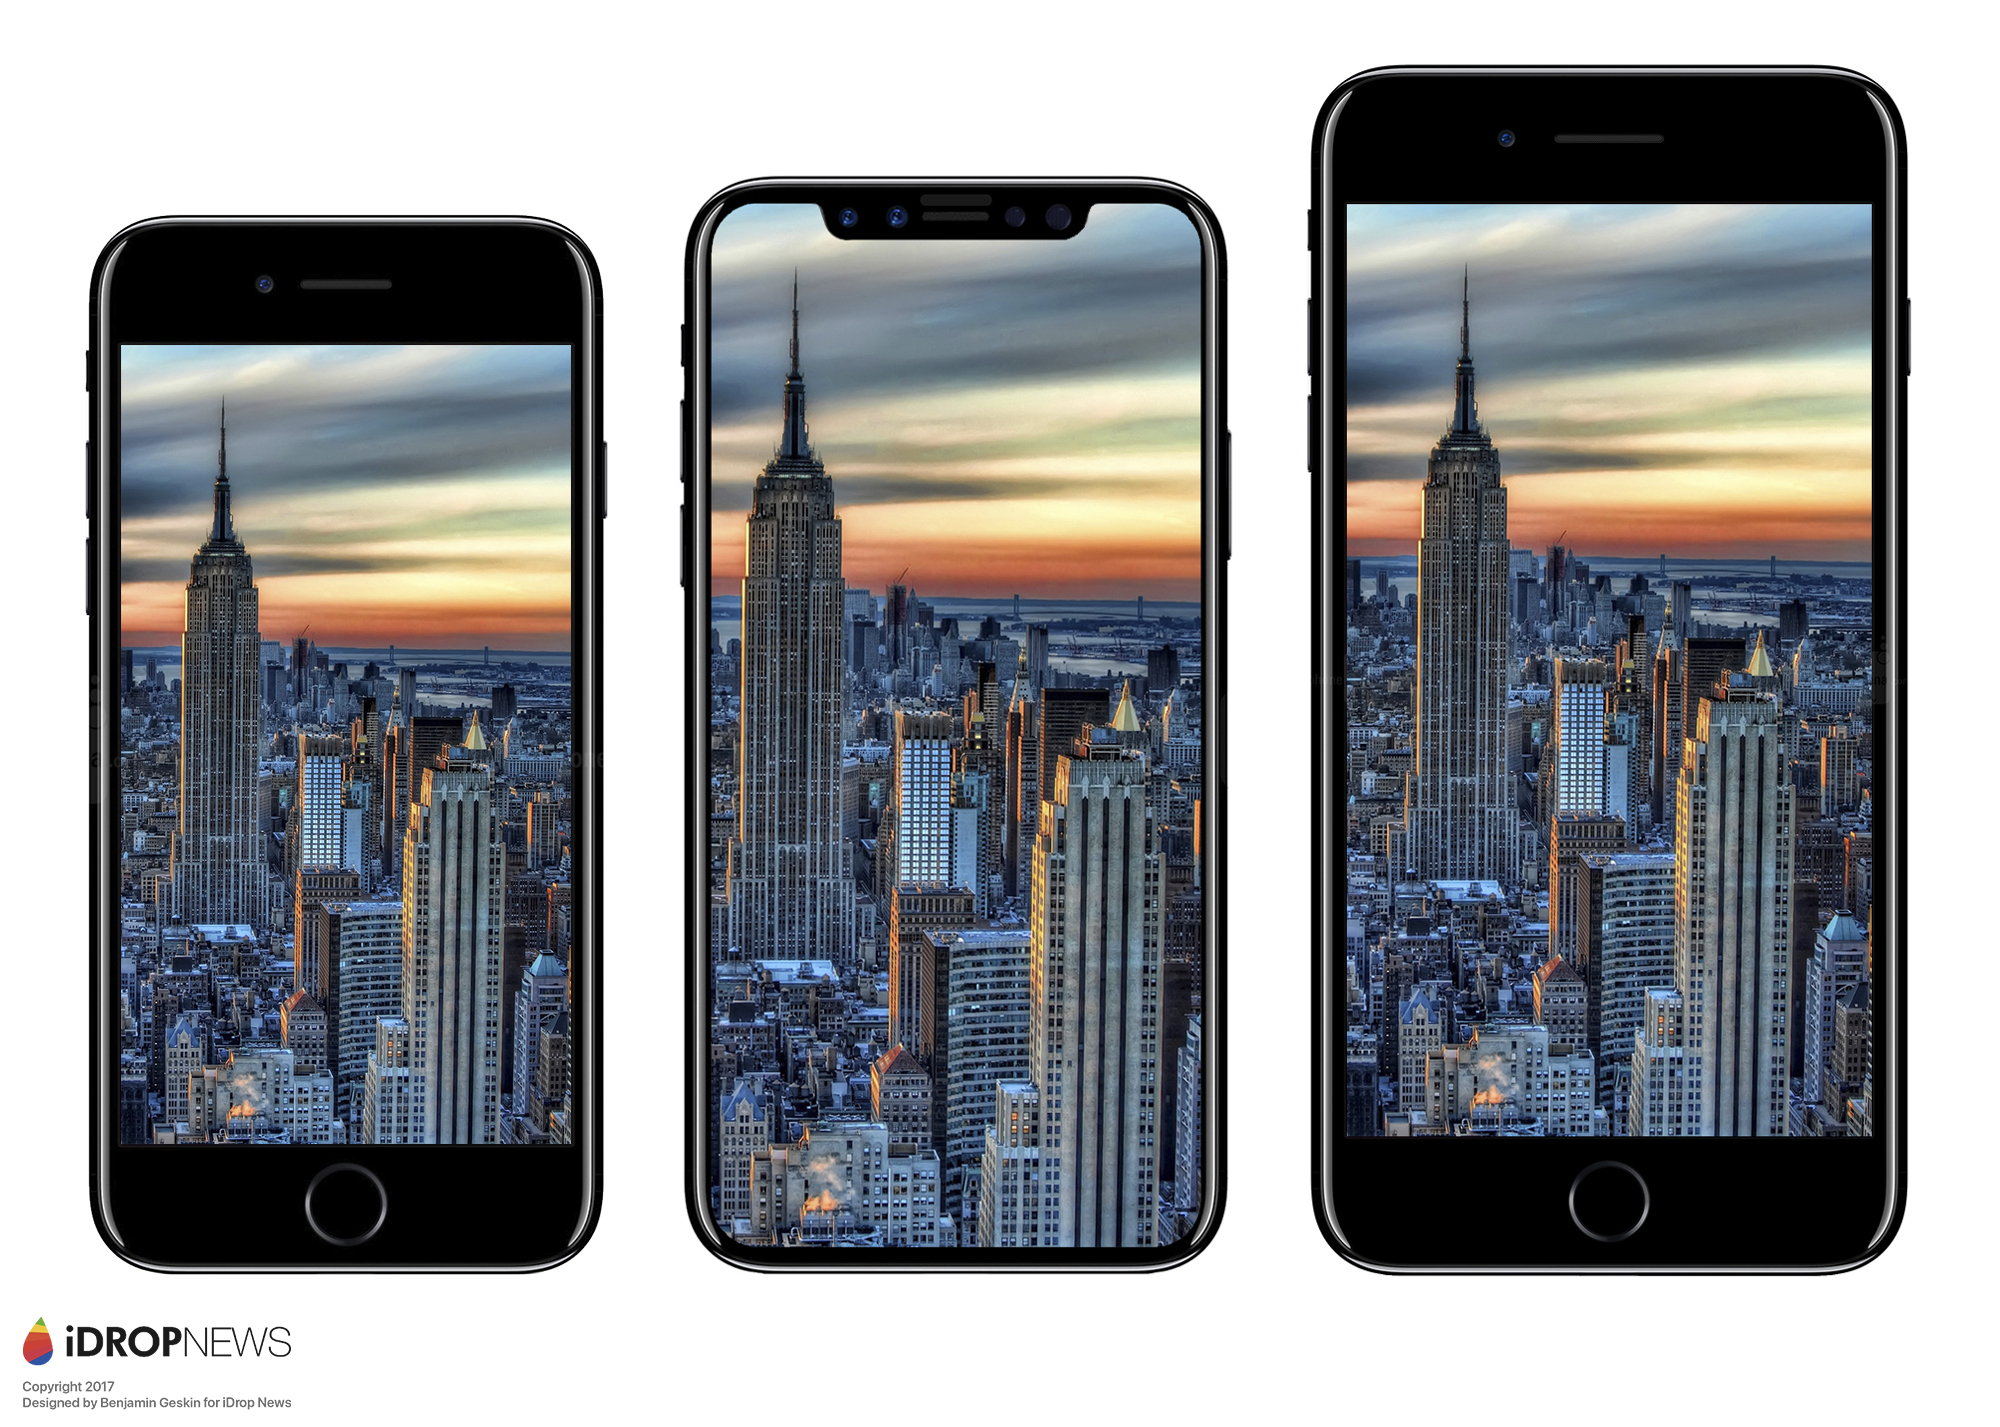 rendering of size differences between the iPhone 8, iPhone X and iPhone 8+